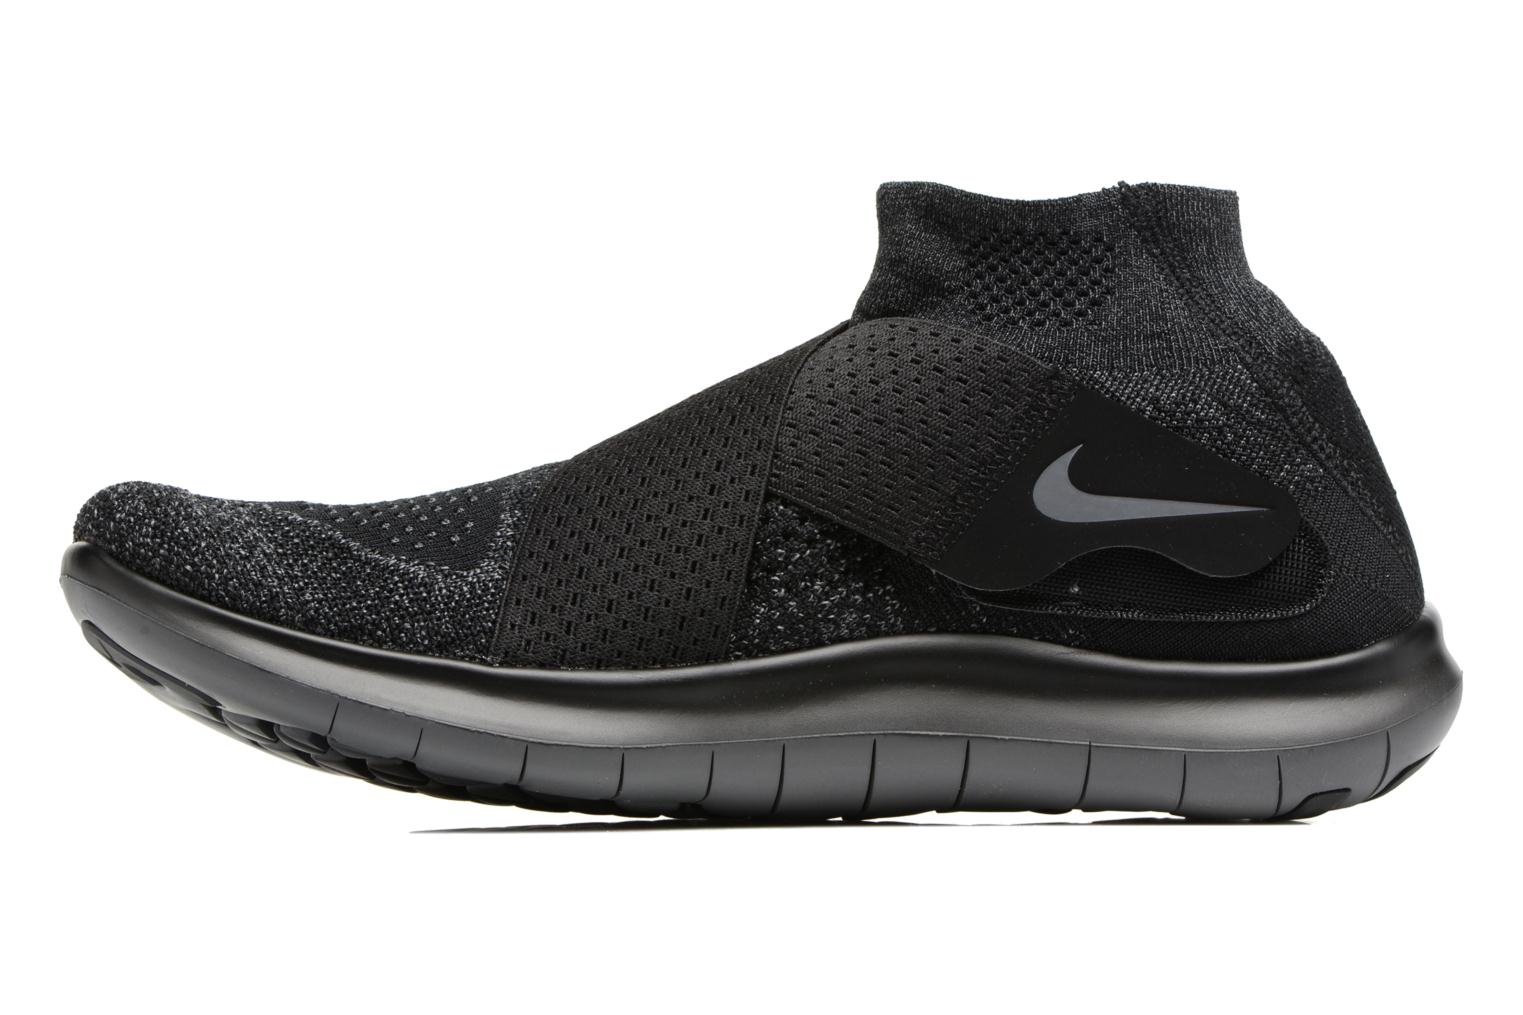 Rn Free volt Motion 2017 Fk anthracite Black dark Nike Grey XiOPukZT